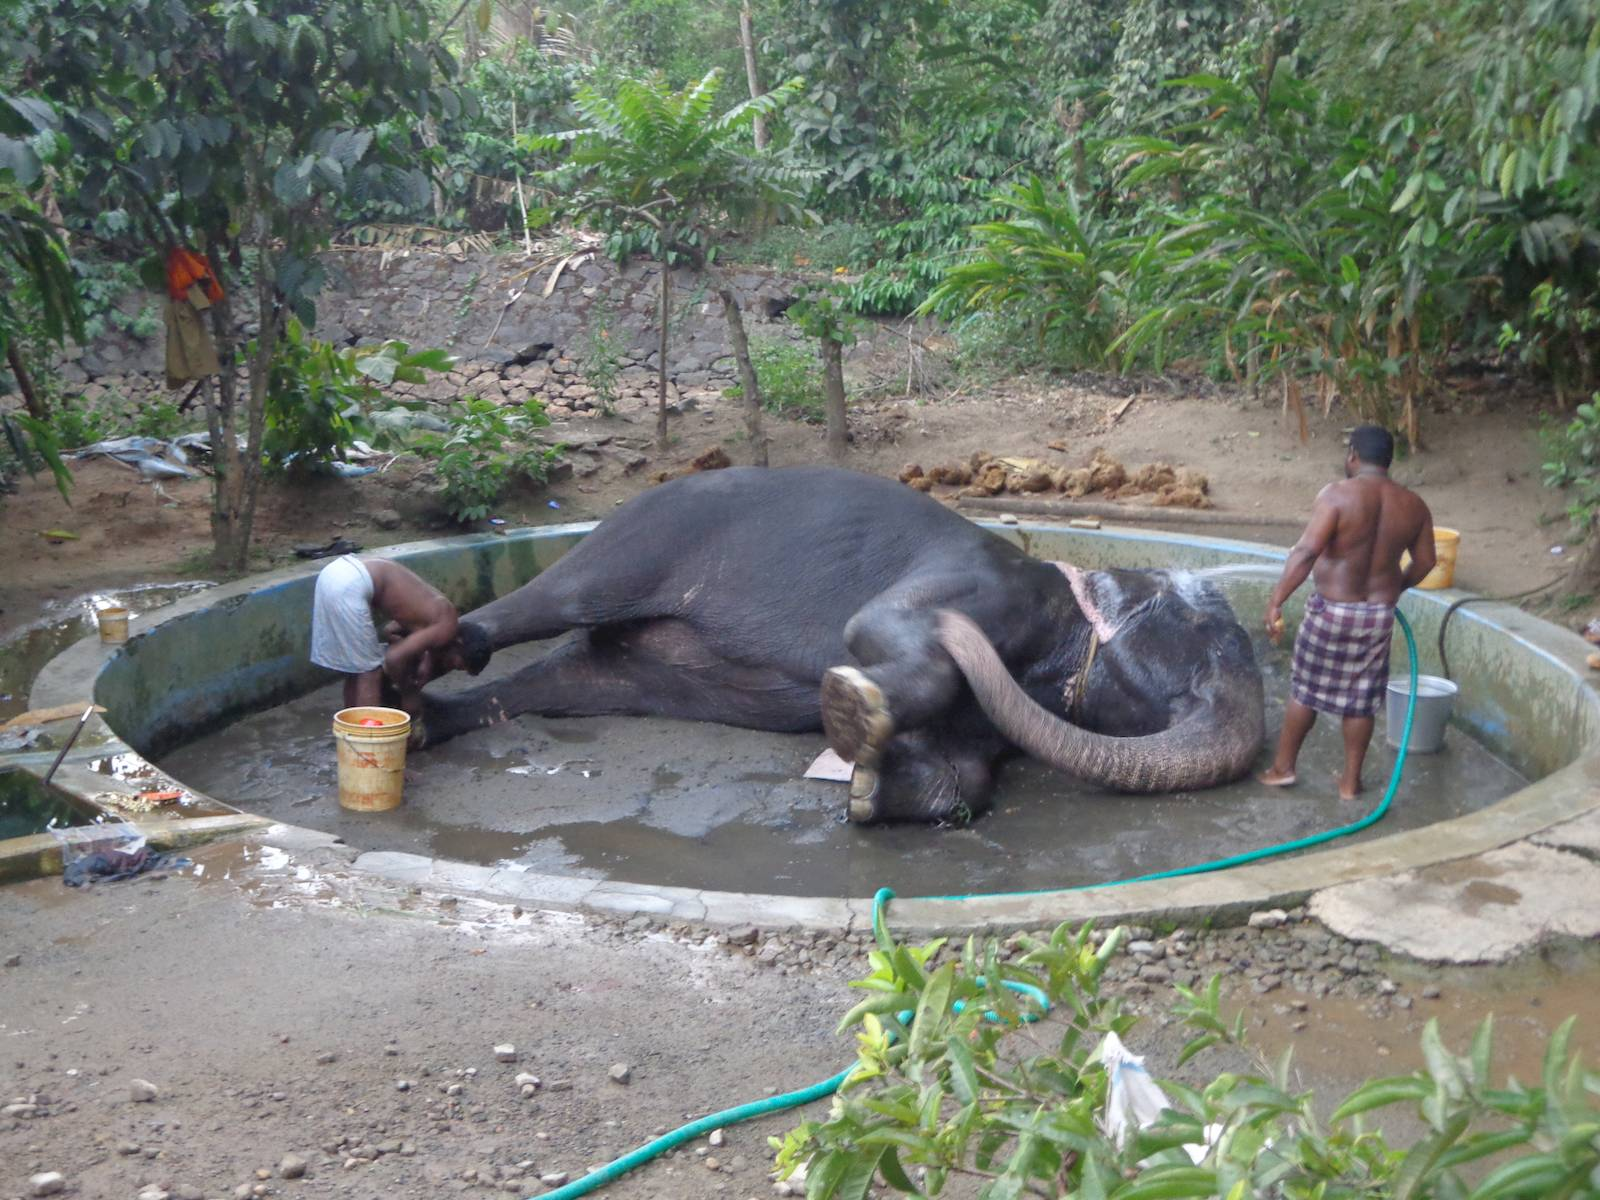 An elephant enjoying a nice bath.